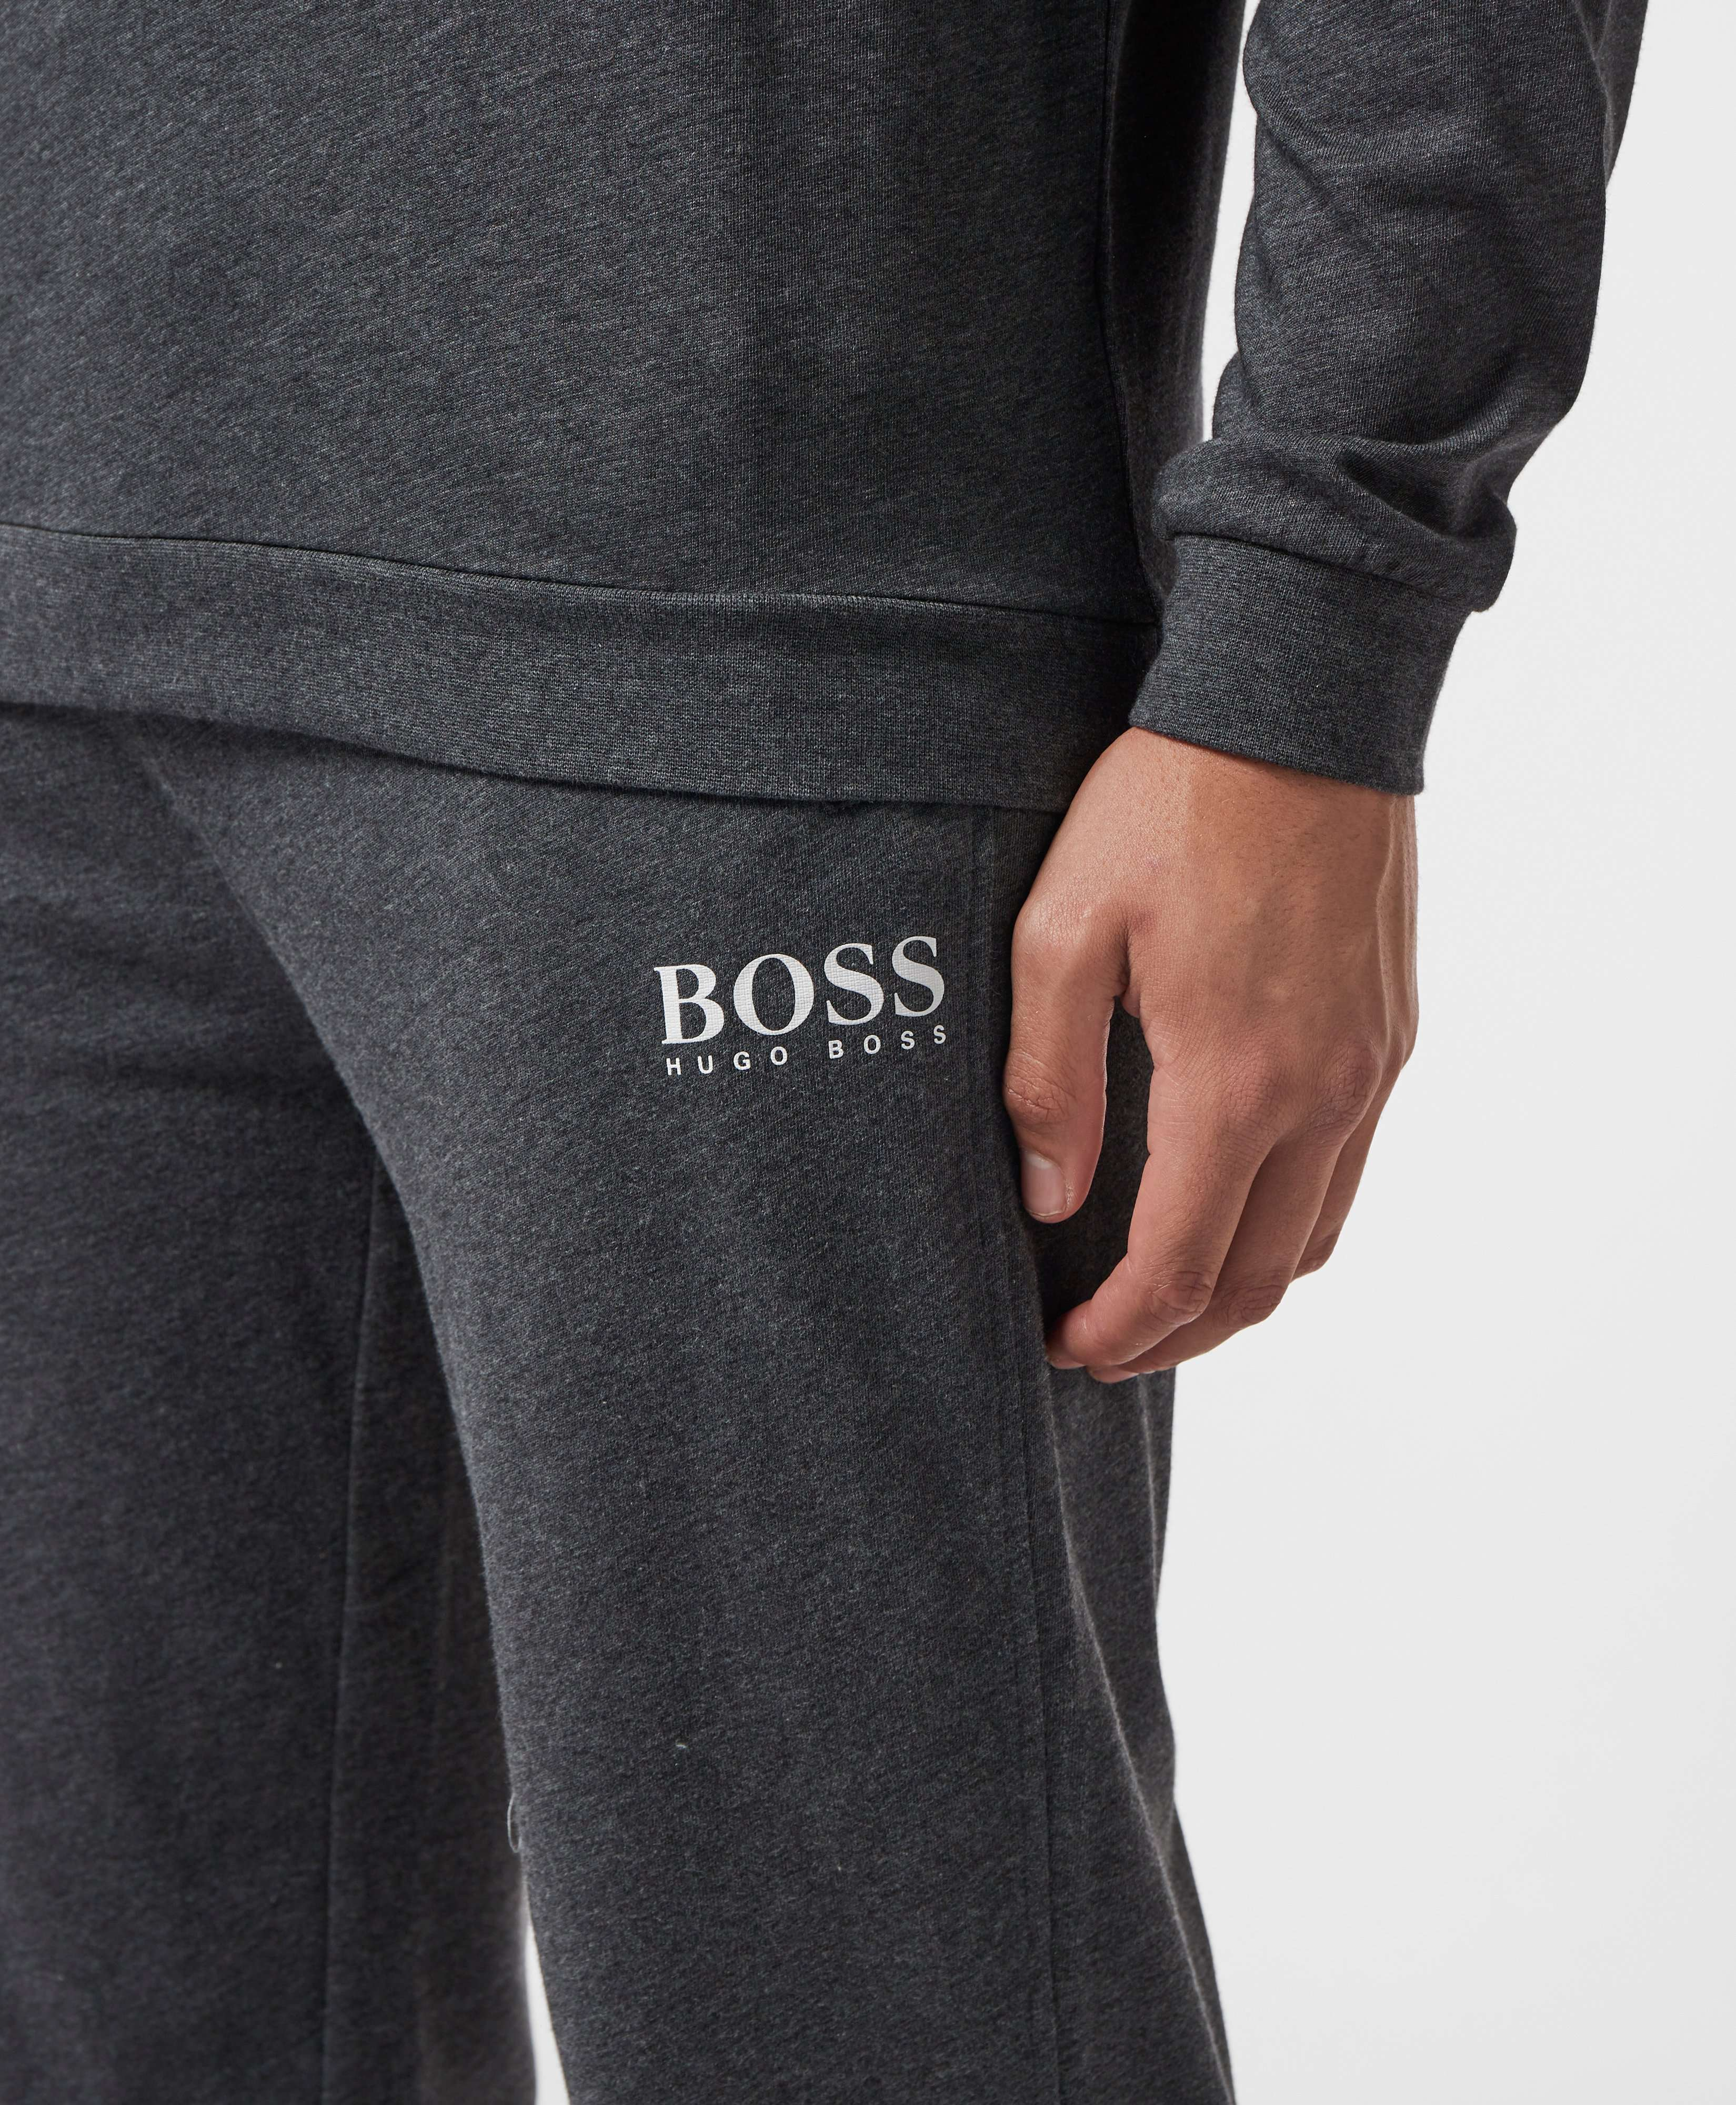 BOSS Small Logo Cuffed Fleece Pants